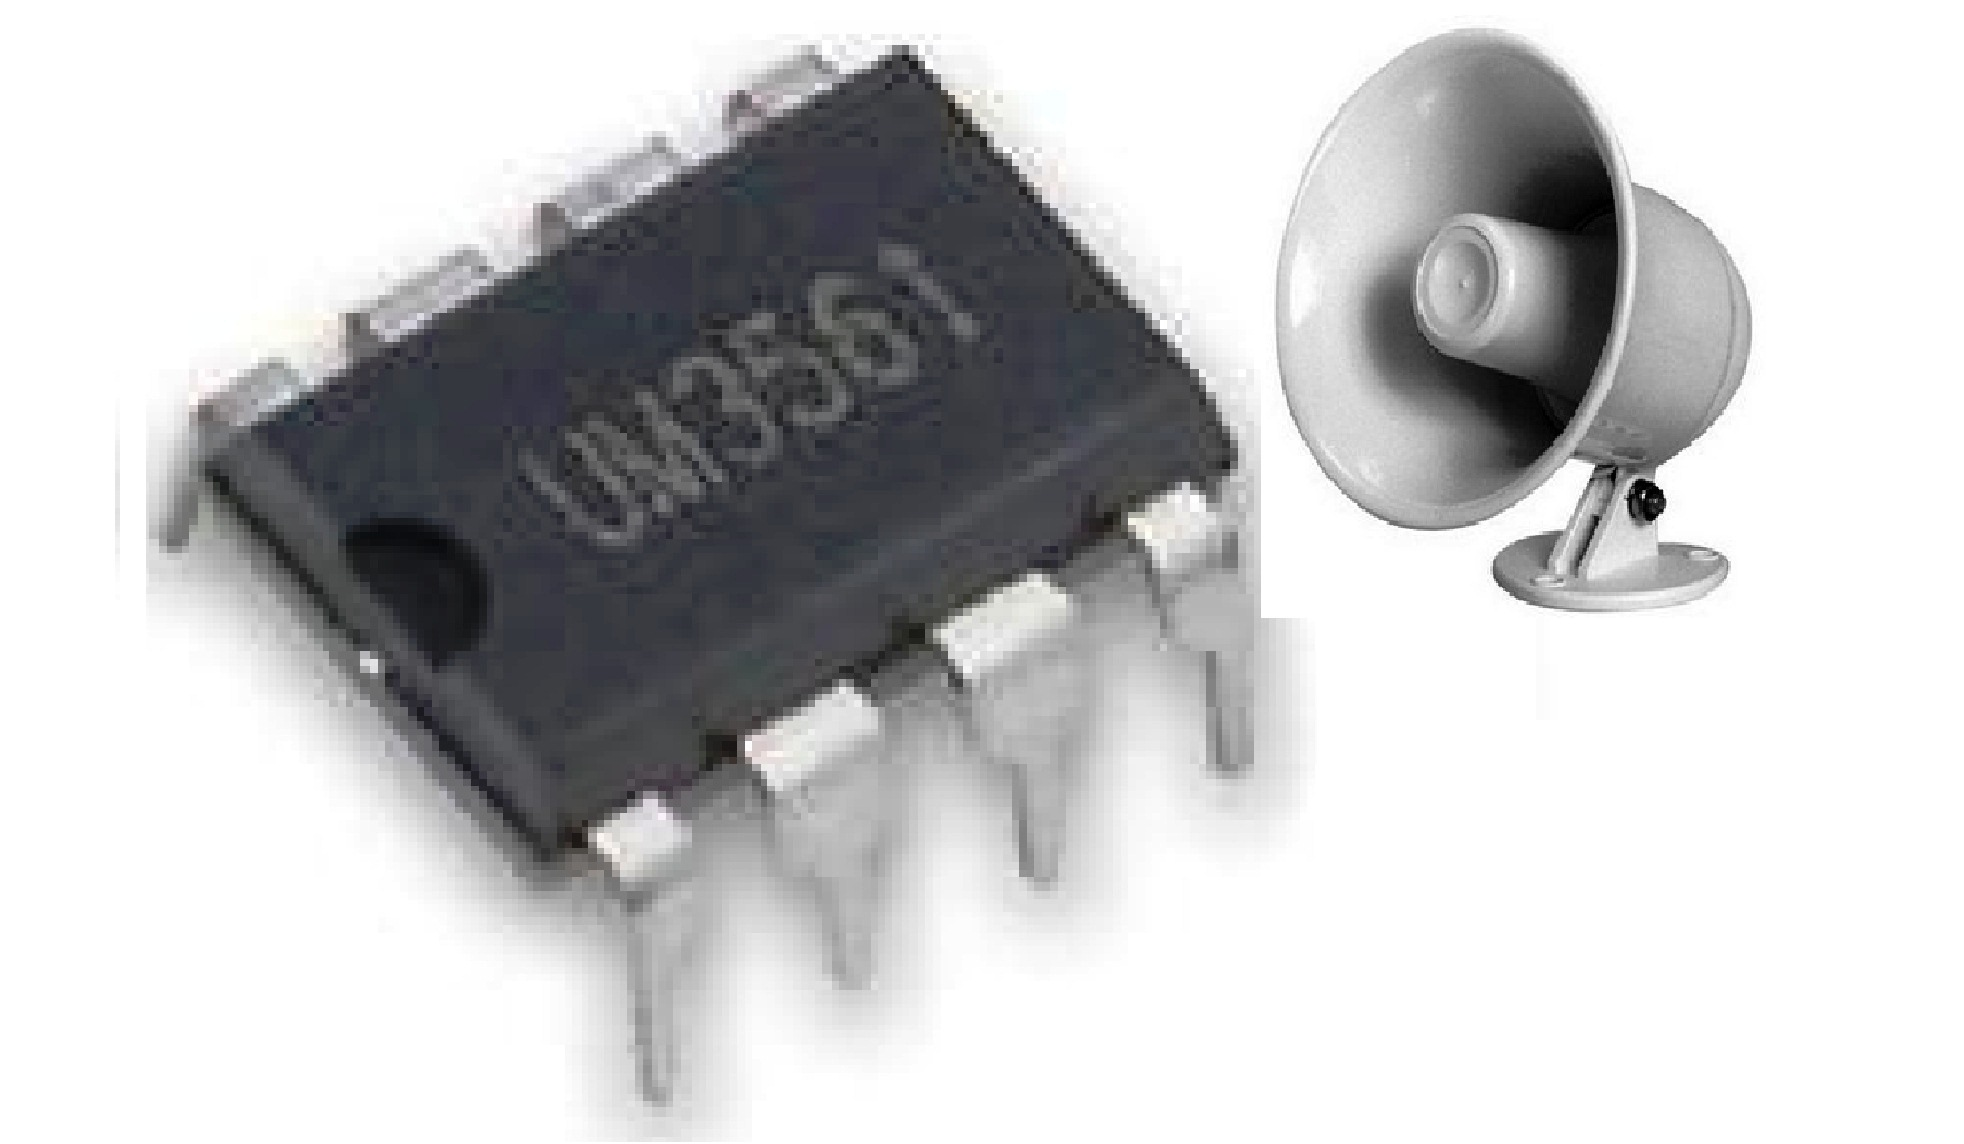 Siren Generator Using Ic Um3561 Where To Buy Integrated Circuit